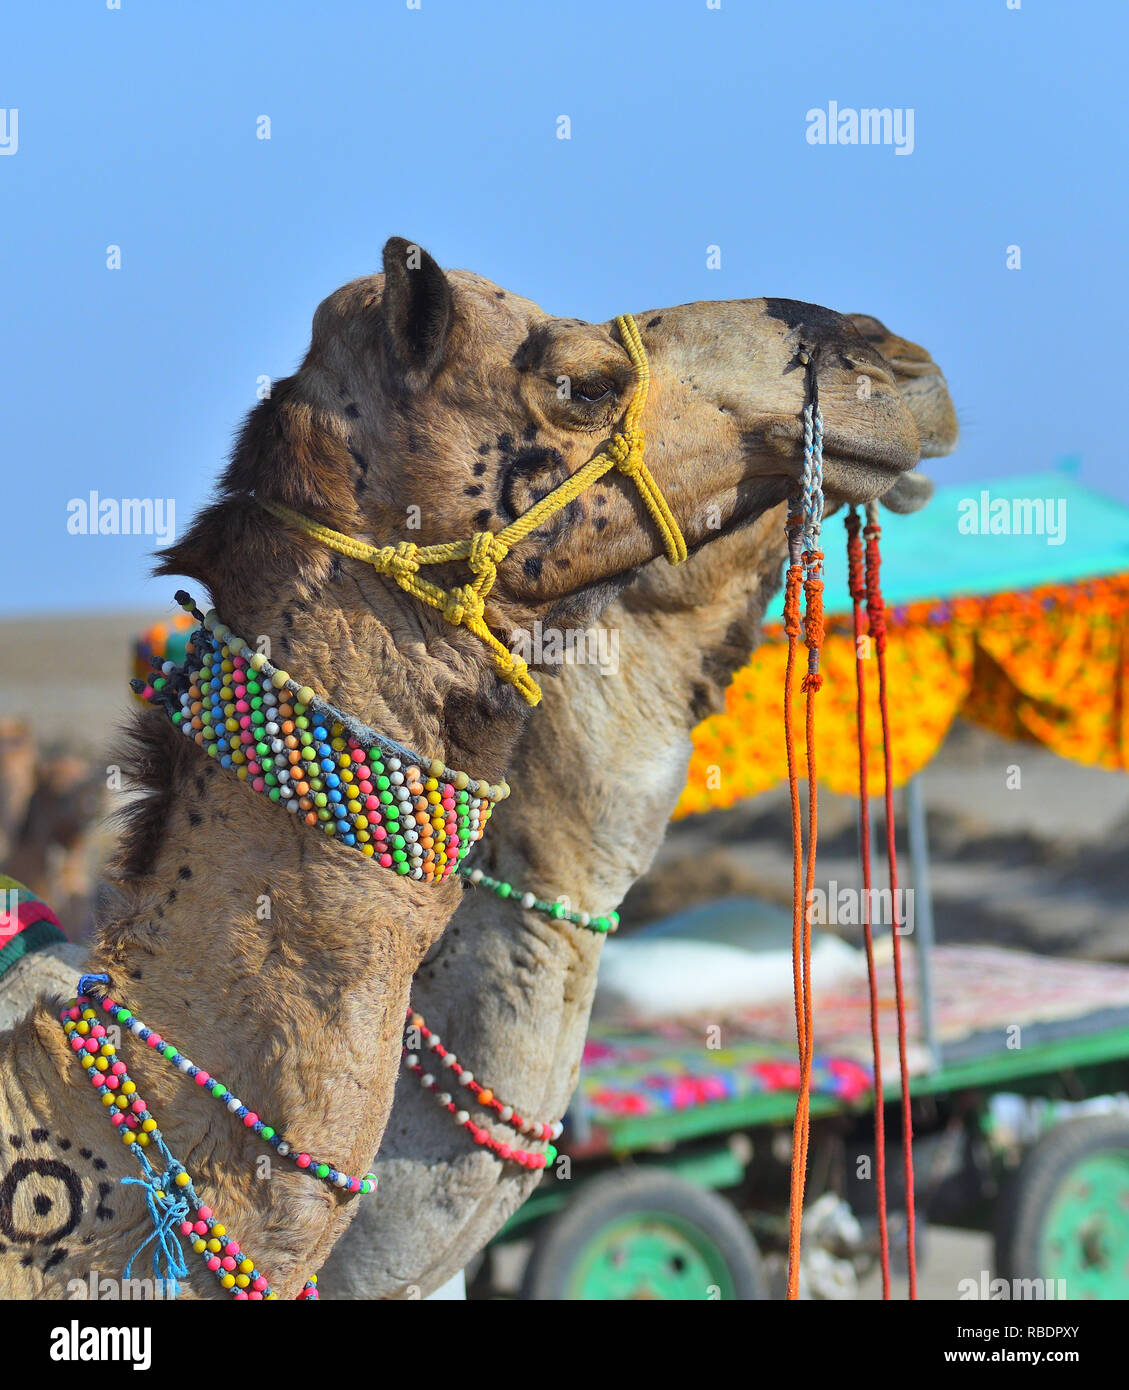 head of Decorated Camel at Greater Rann of Kutch, Gujarat, India - Stock Image